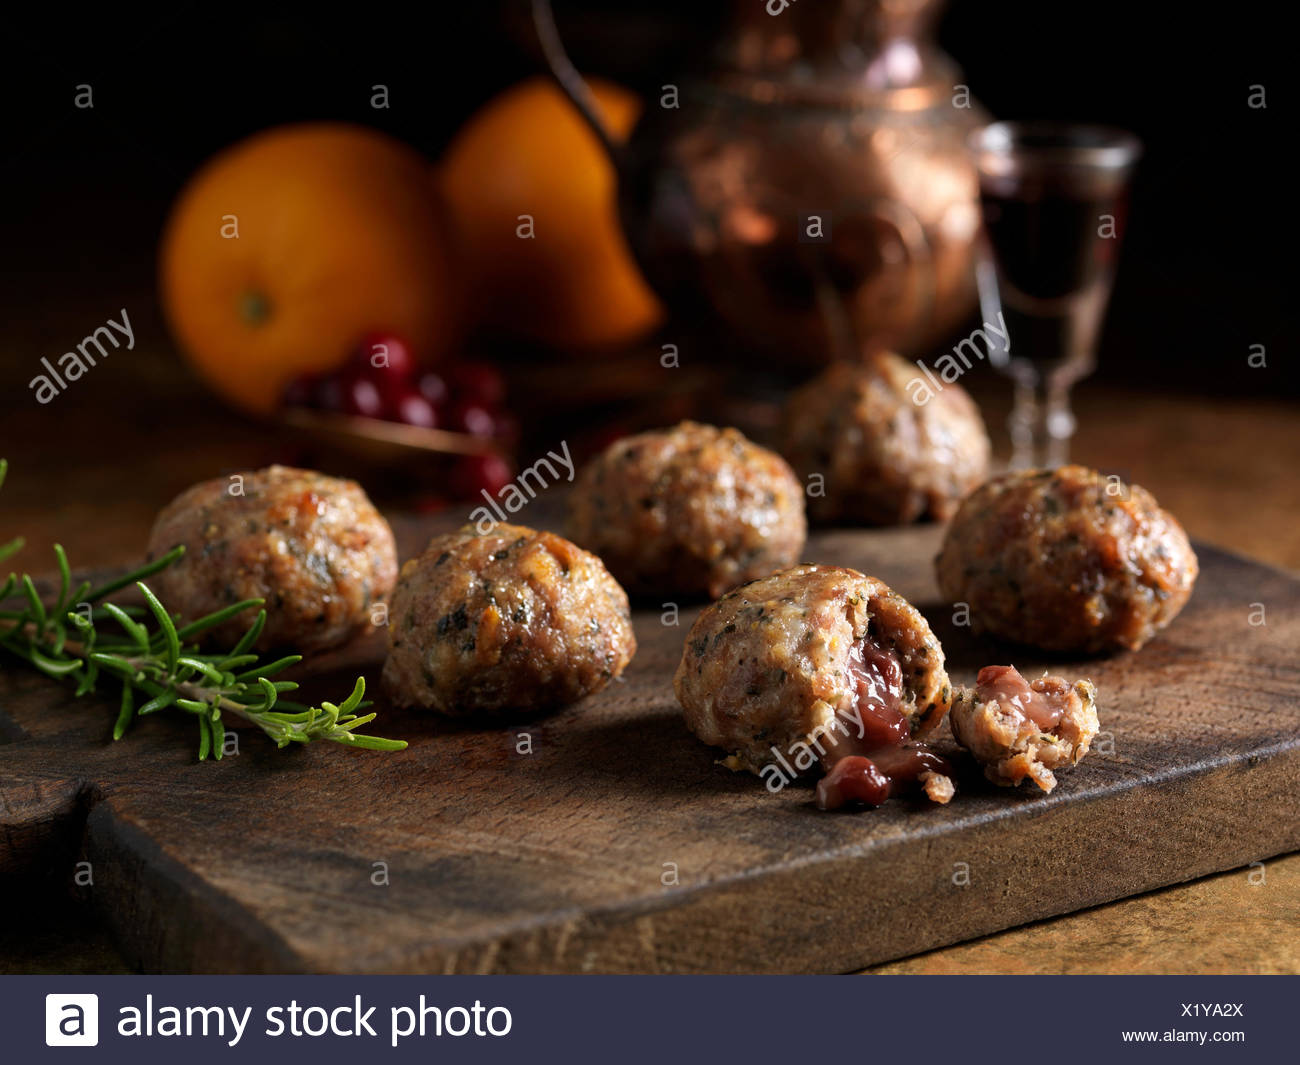 Christmas ingredients of pork orange rosemary stuffing balls with port cranberry sauce centres Oranges a glass of red wine - Stock Image